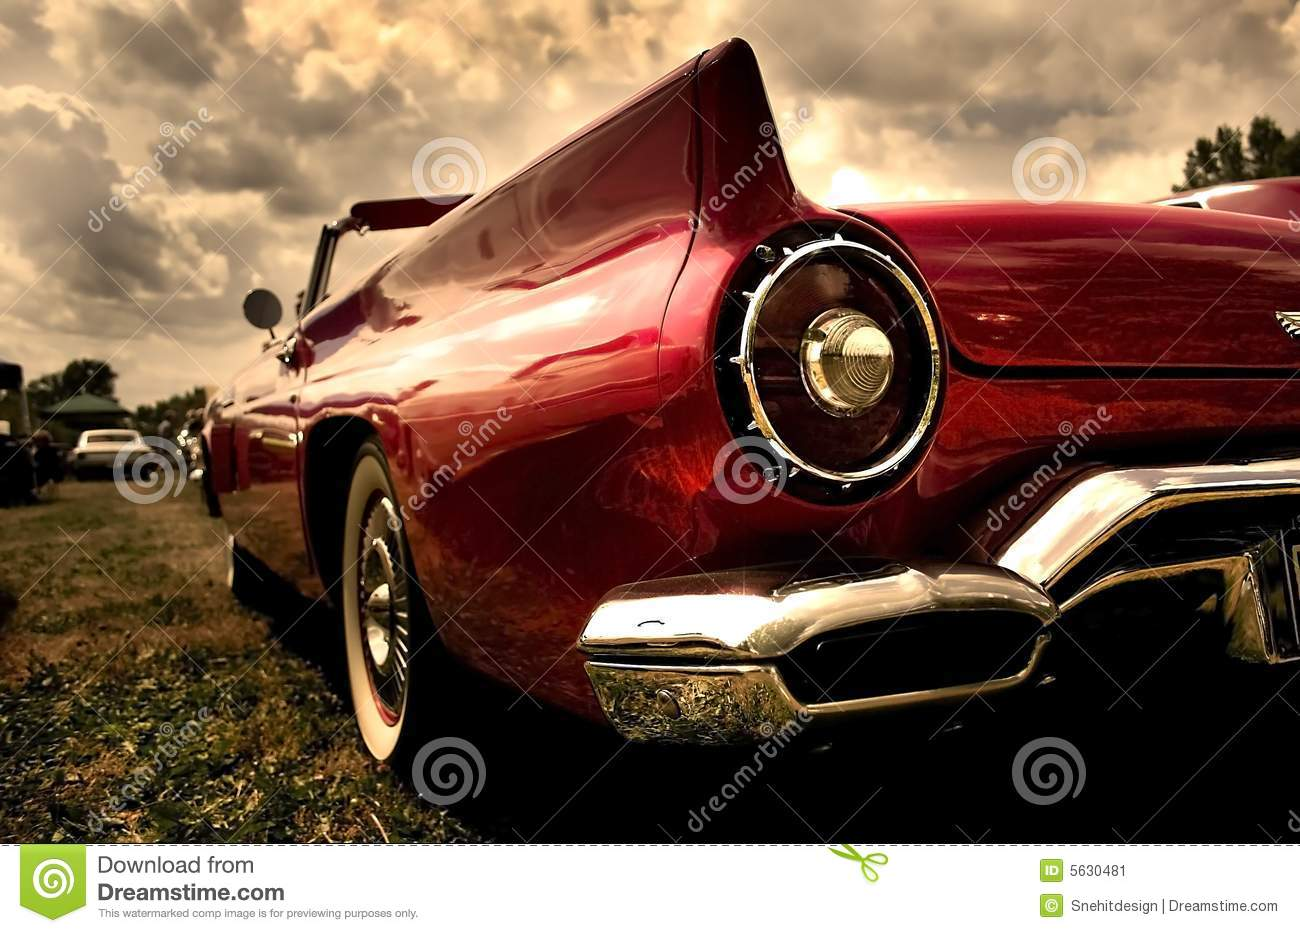 Close Up Shot Of A Vintage Car Stock Image - Image of automobile ...